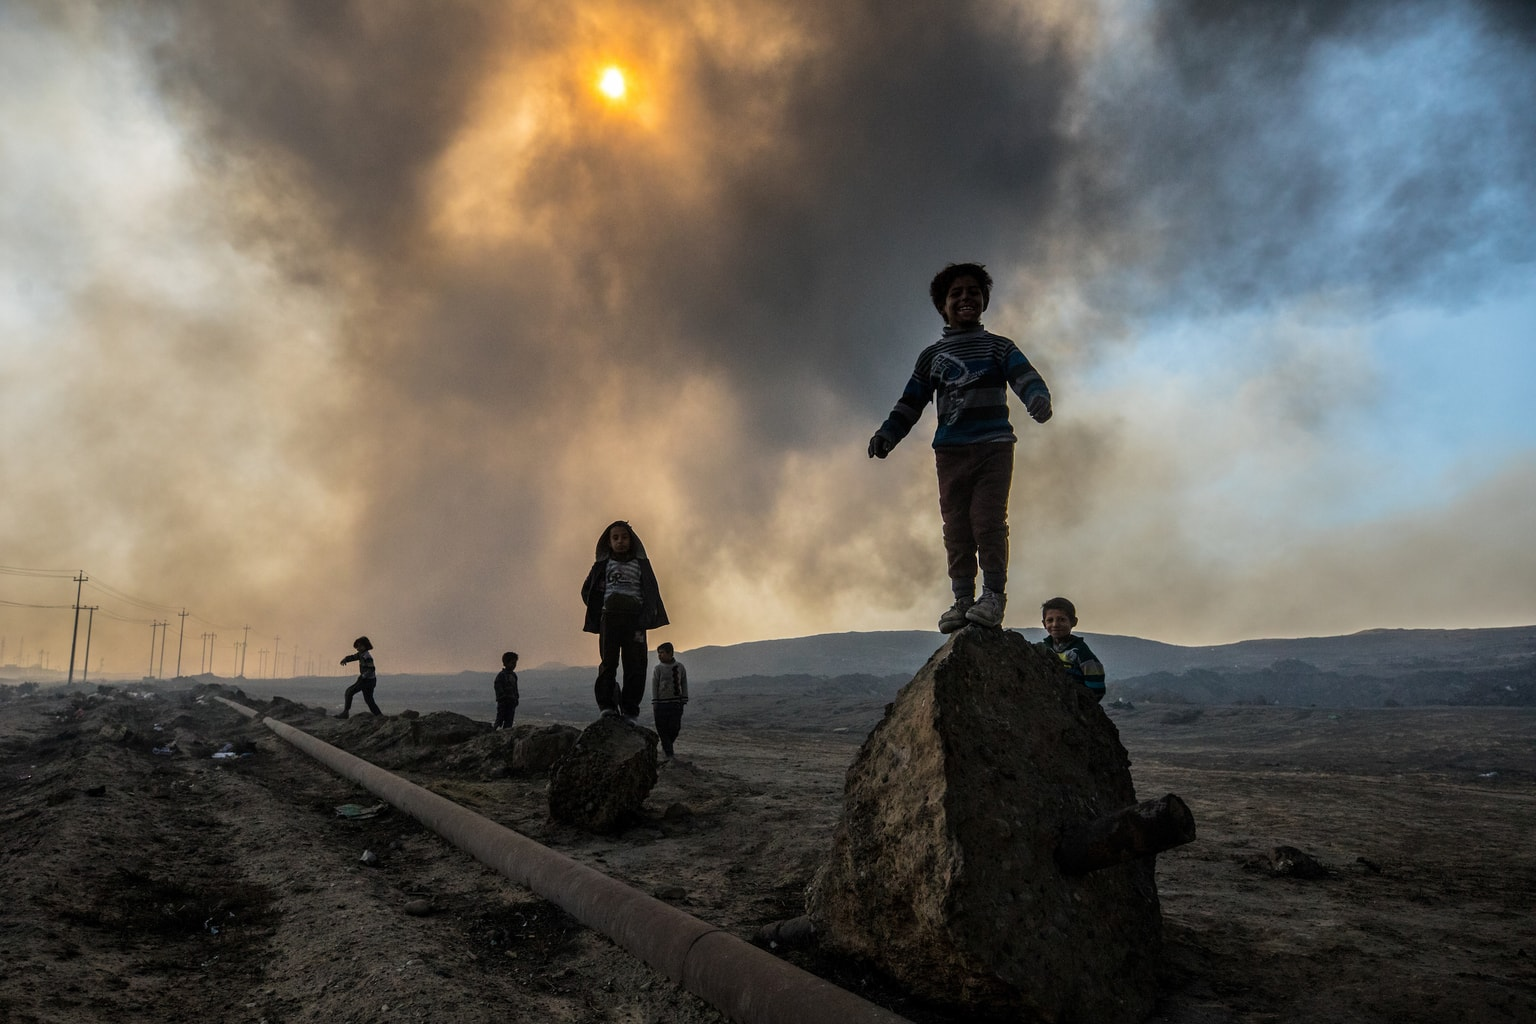 The Stories That Keep Them Going: 5 Photojournalists Share Their Most Powerful Moments - PhotoShelter Blog